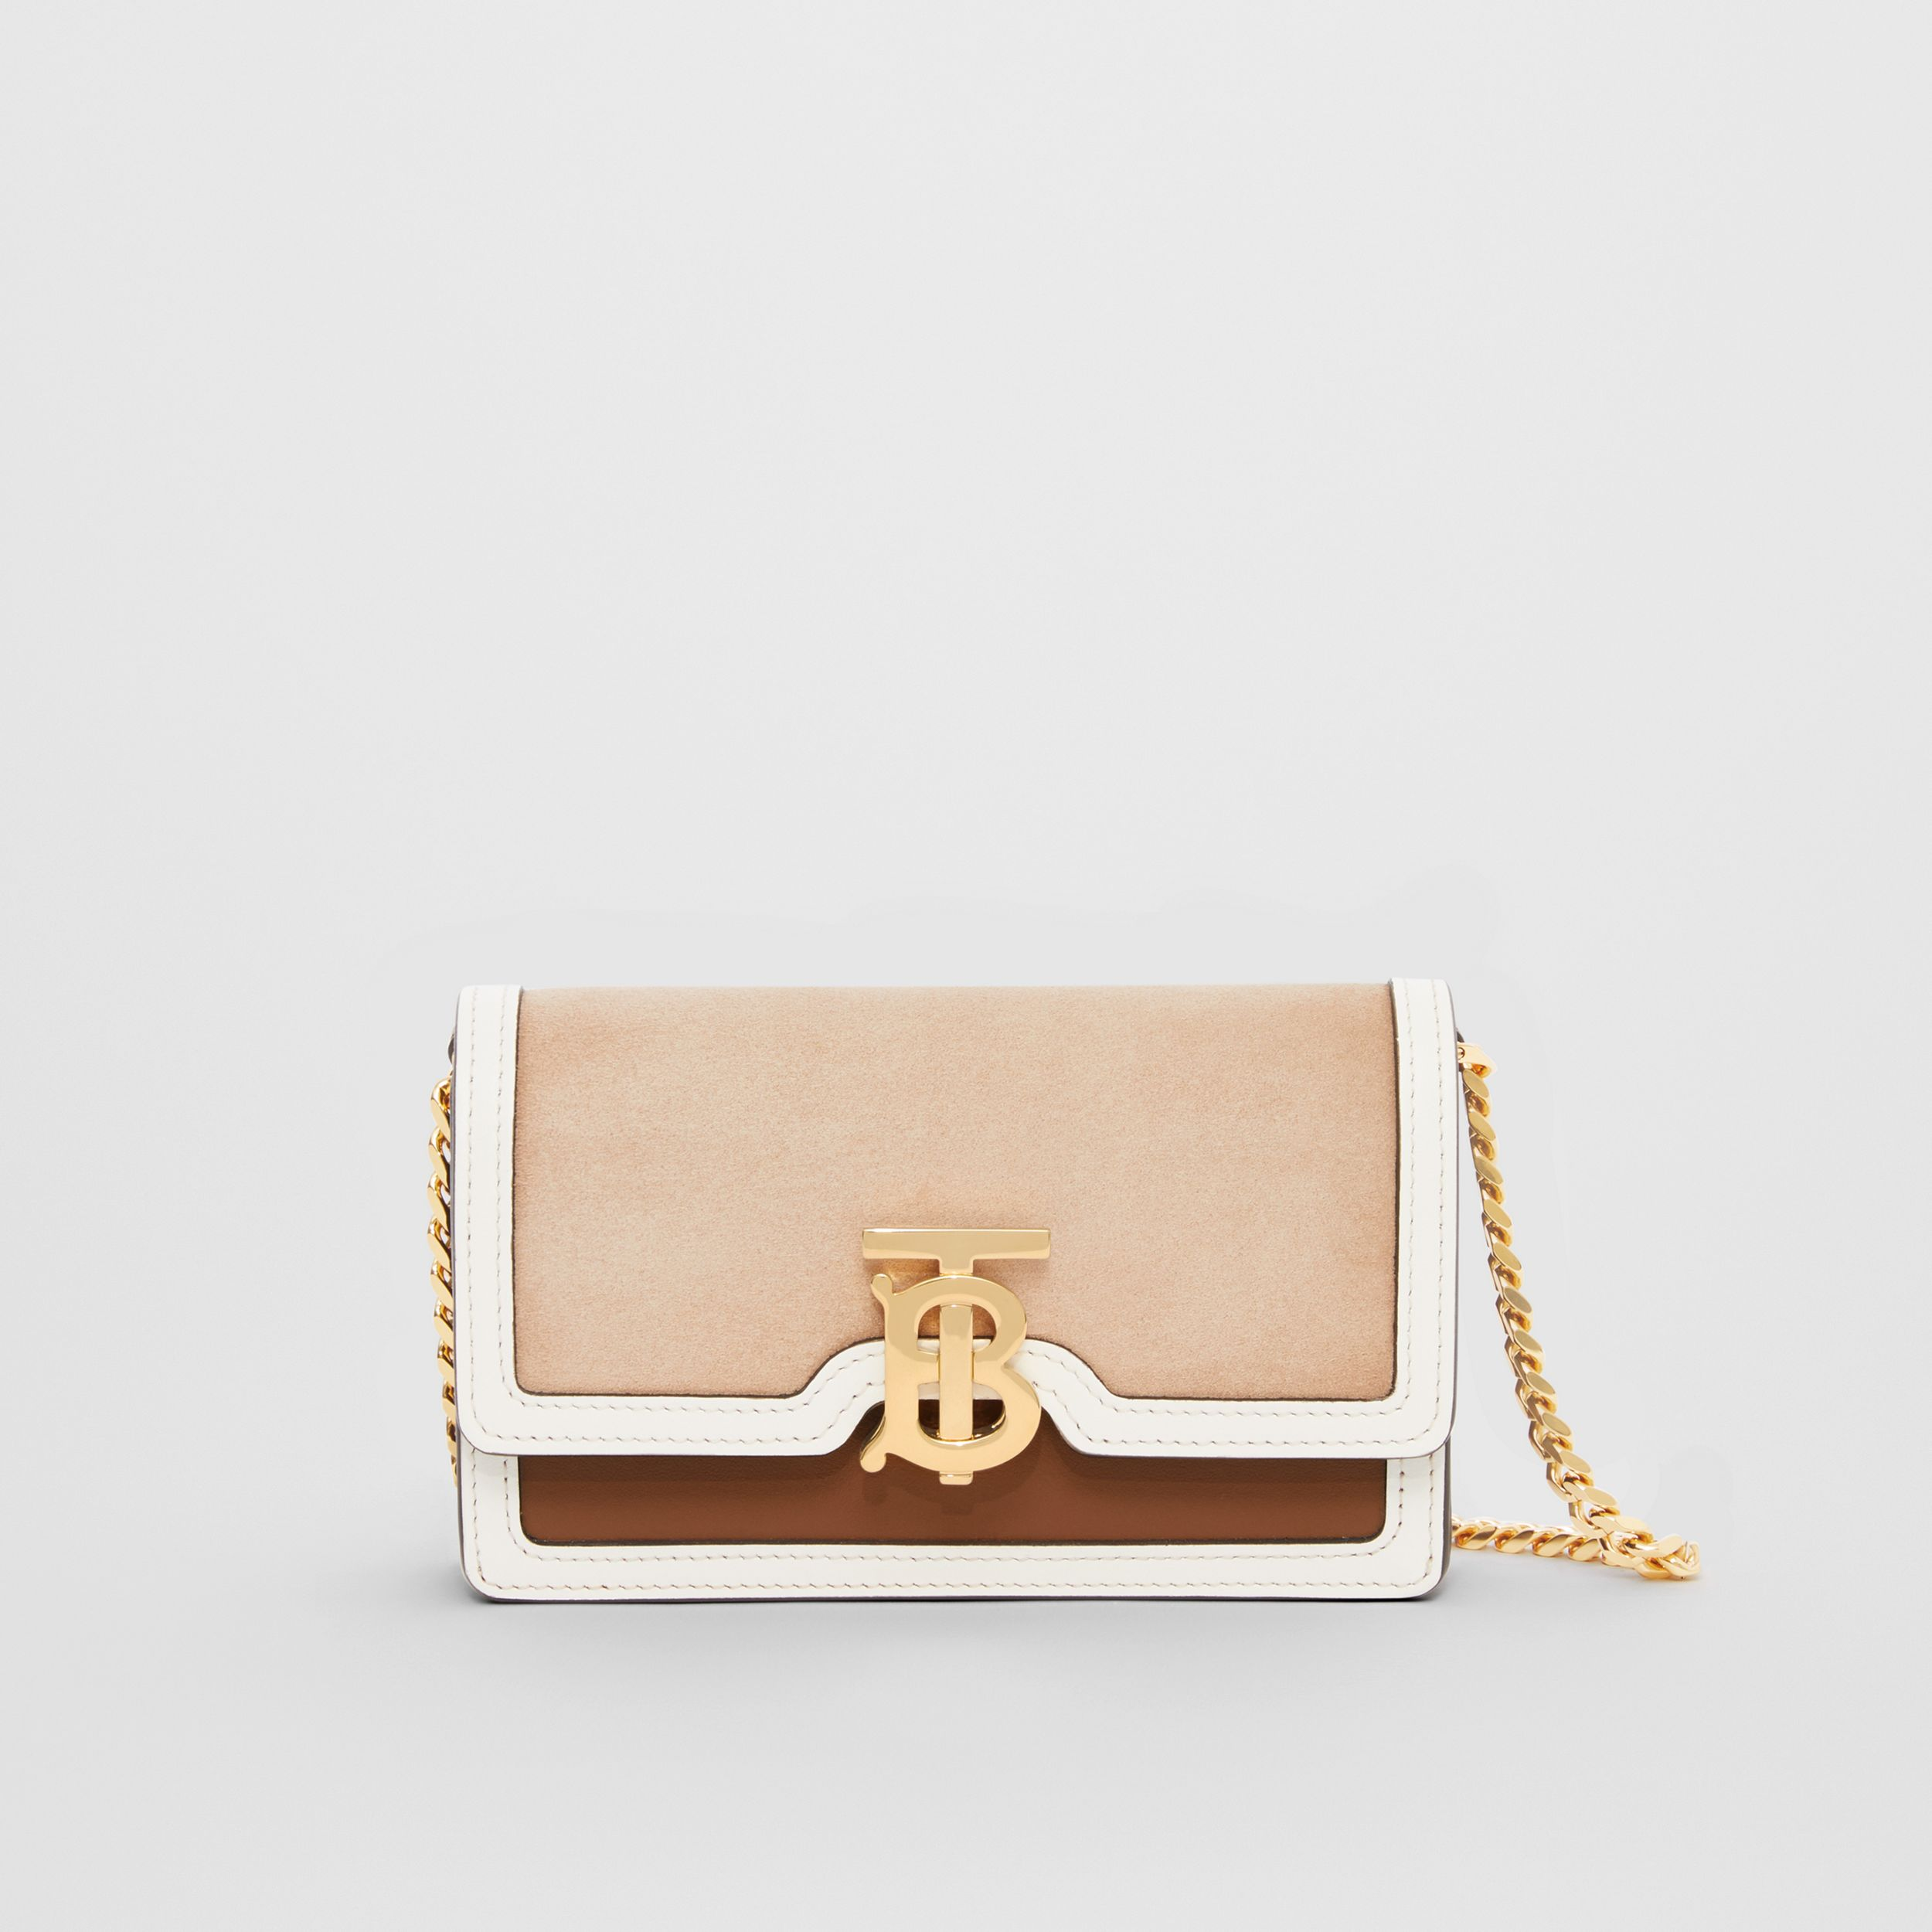 Mini Suede and Two-tone Leather Shoulder Bag in Biscuit - Women | Burberry United States - 1